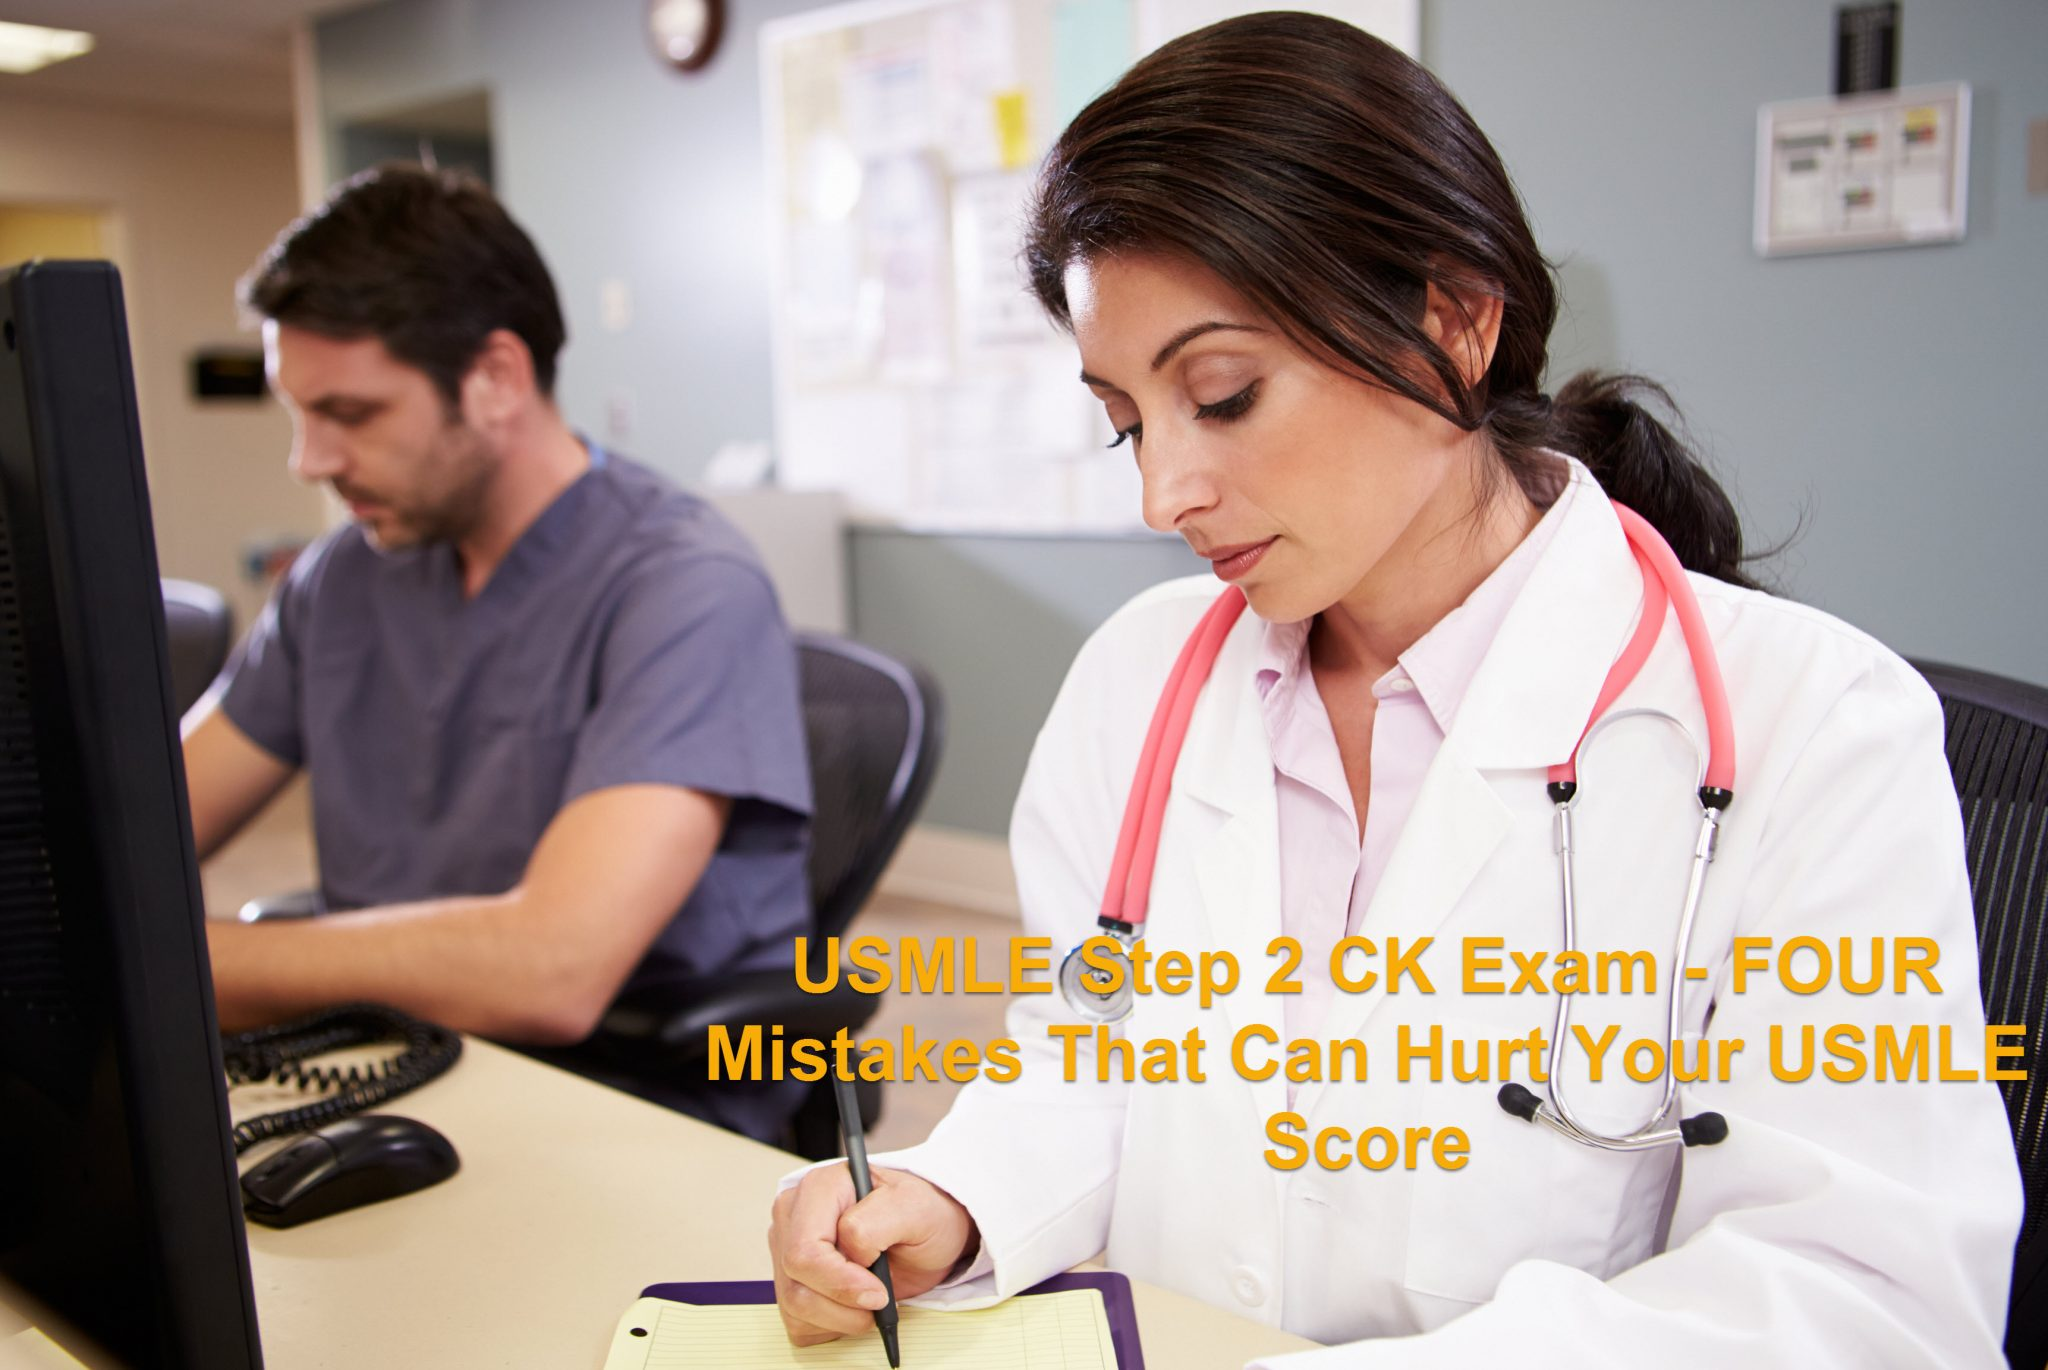 USMLE Step 2 CK Examination - FOUR Errors That Can Harm Your USMLE Rating